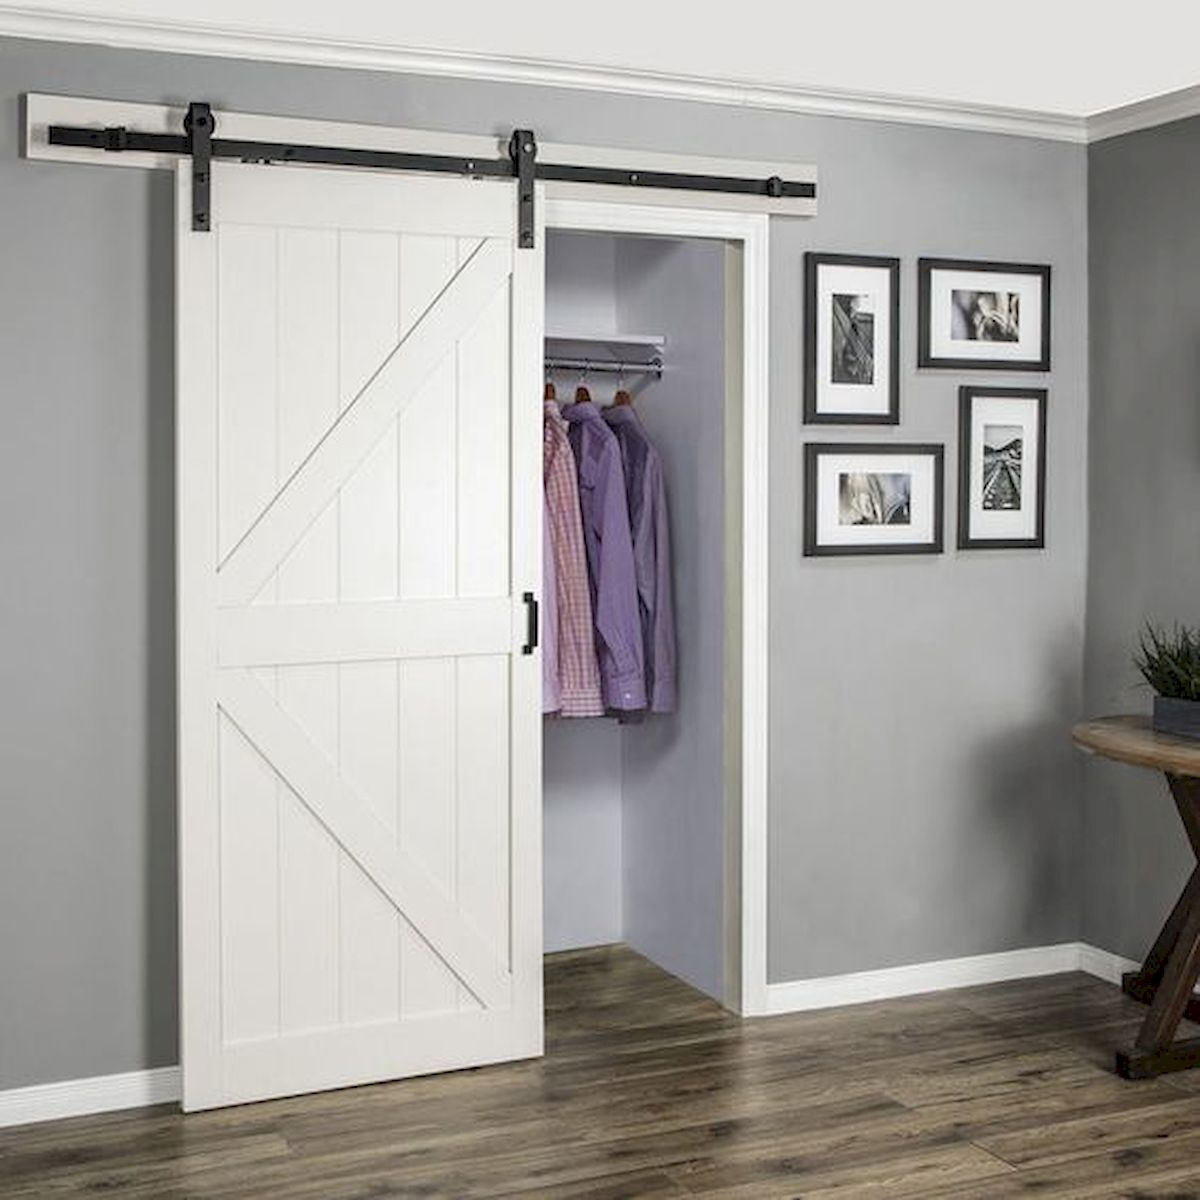 33 Fantastic Barn Door Design Ideas (2)